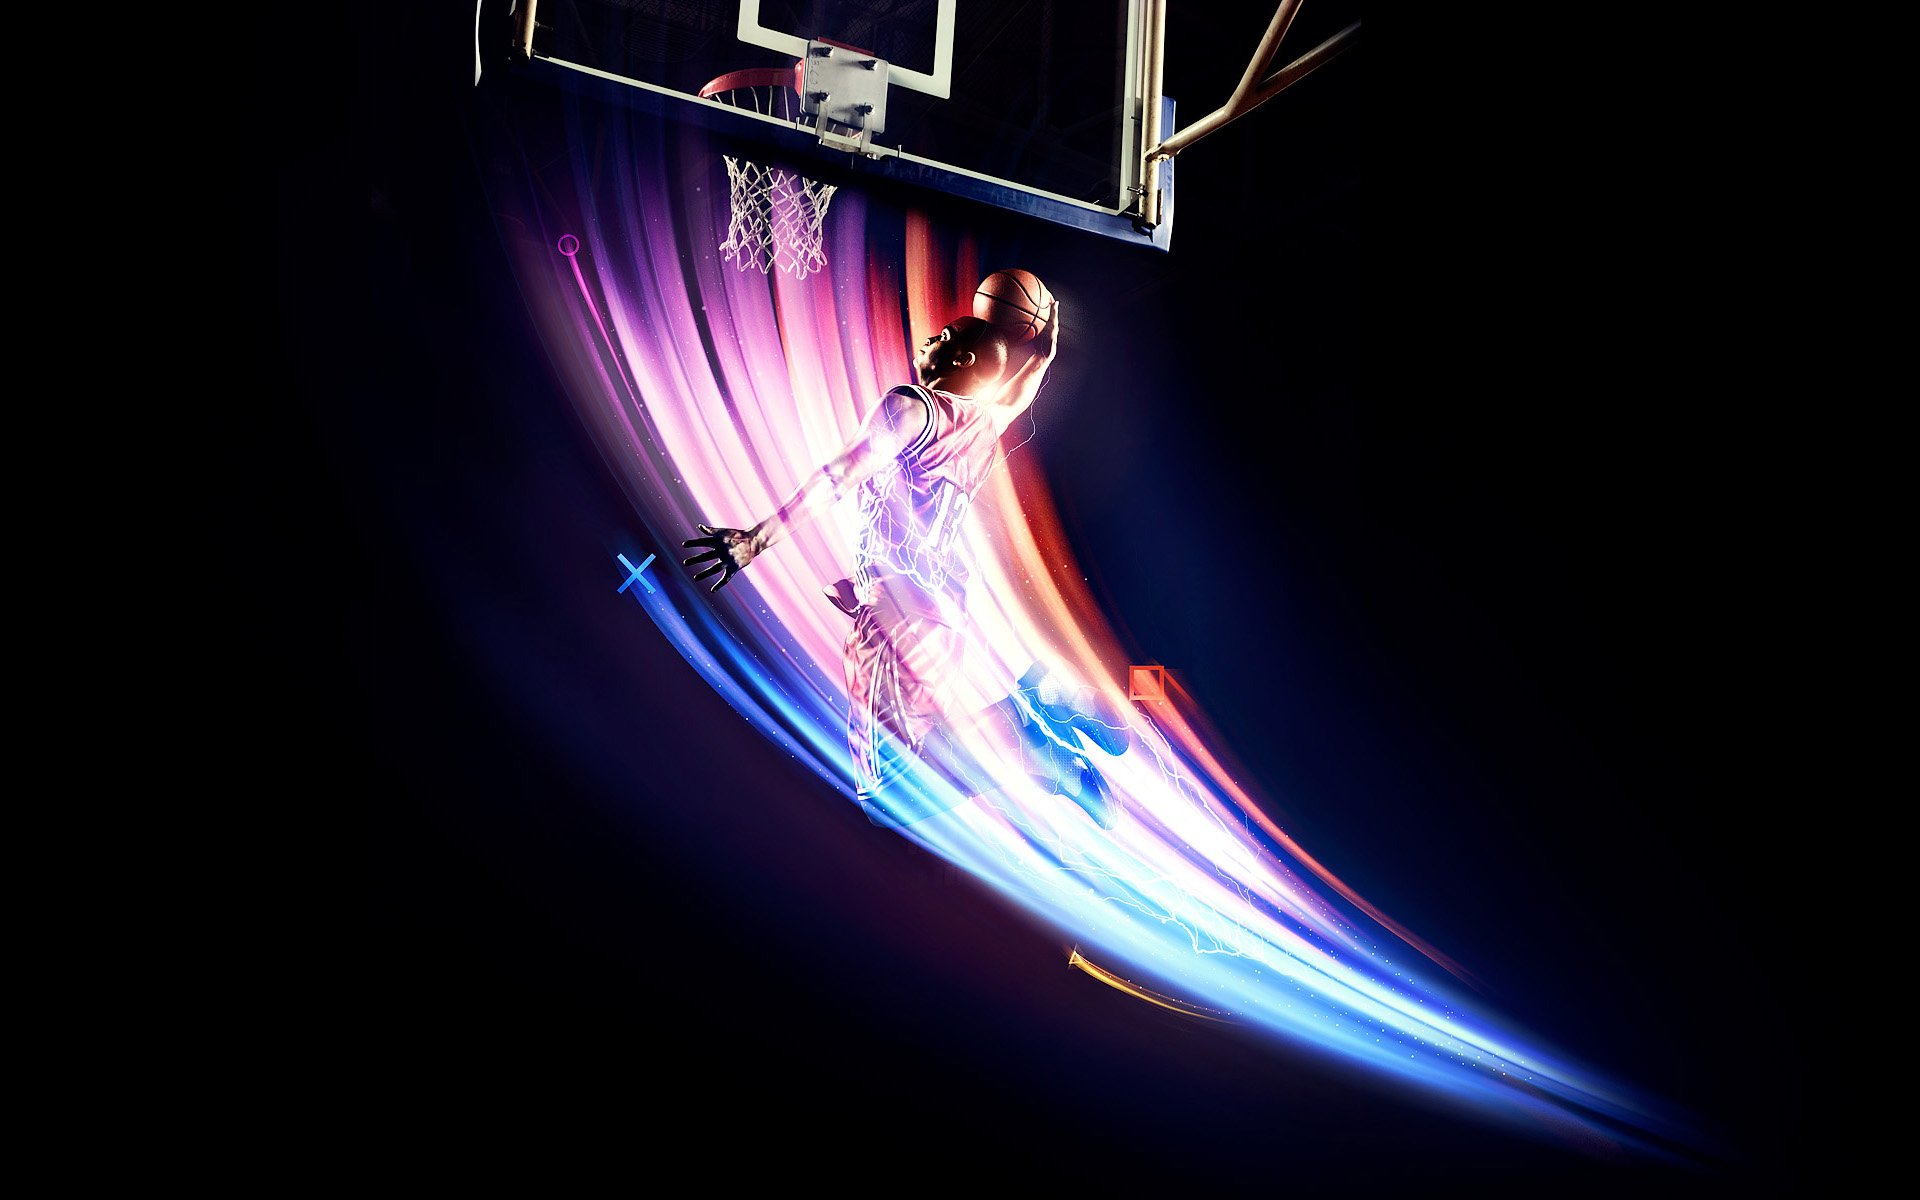 download Cool Basketball Wallpapers The Art Mad Wallpapers 1920x1200